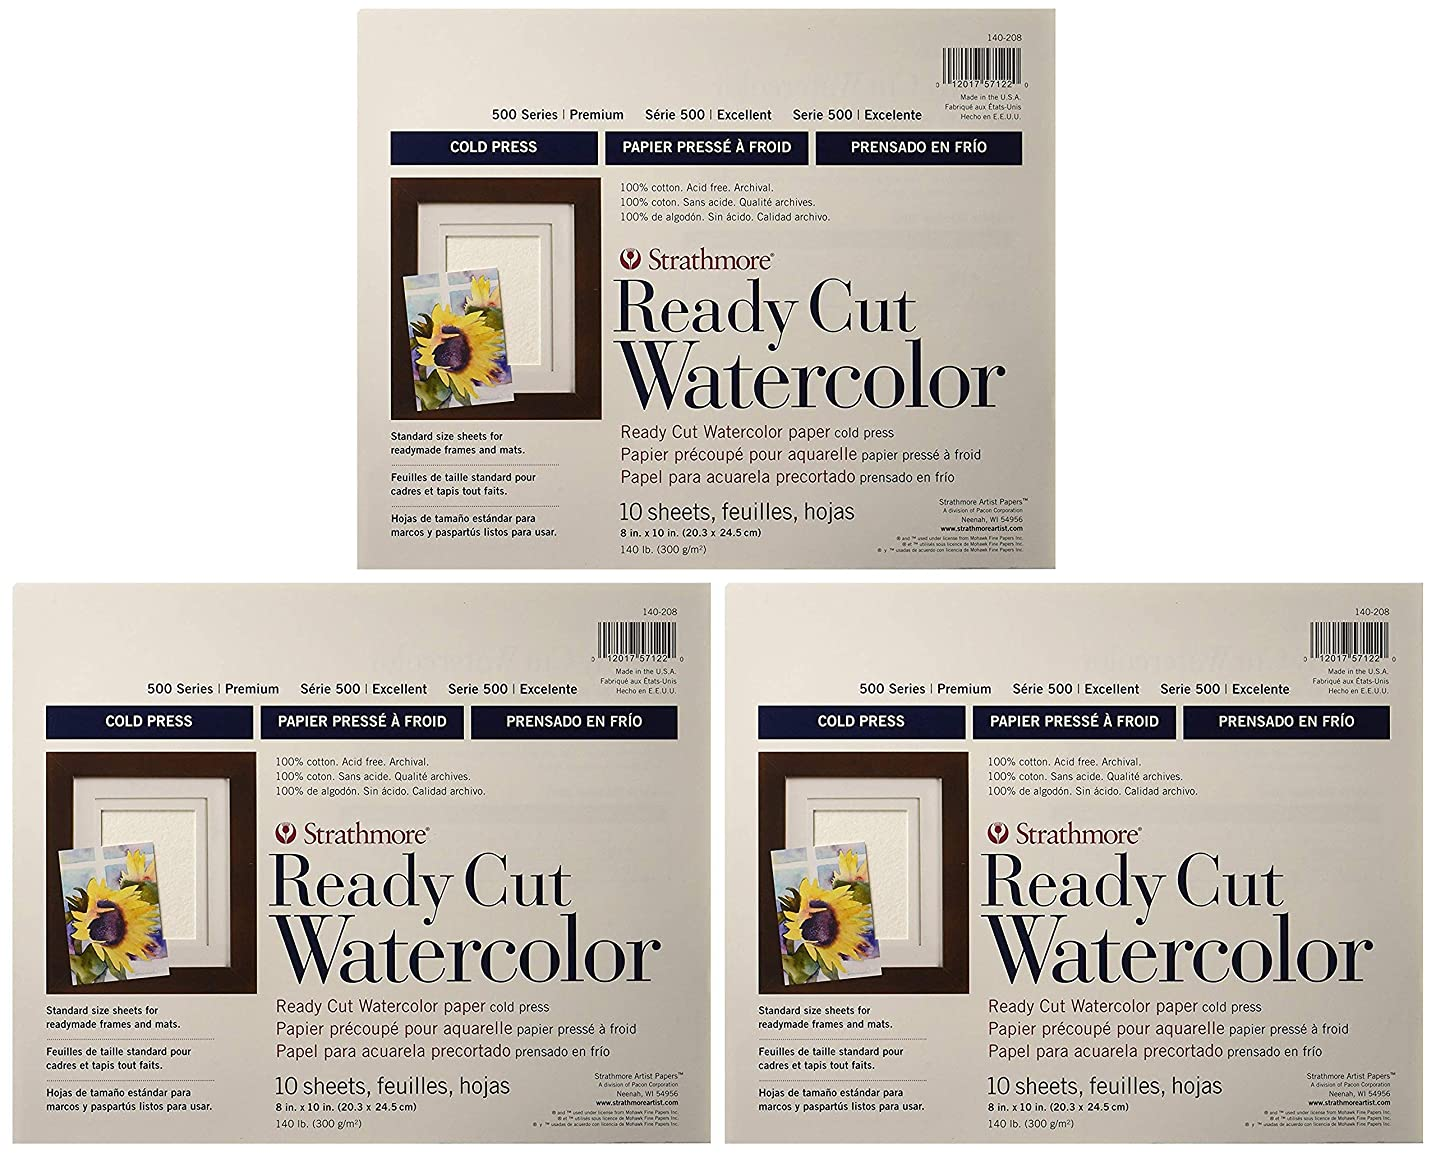 3-Pack - Strathmore 140-208 500 Series Ready Cut Watercolor Paper, 140 lb. Cold Press, 8